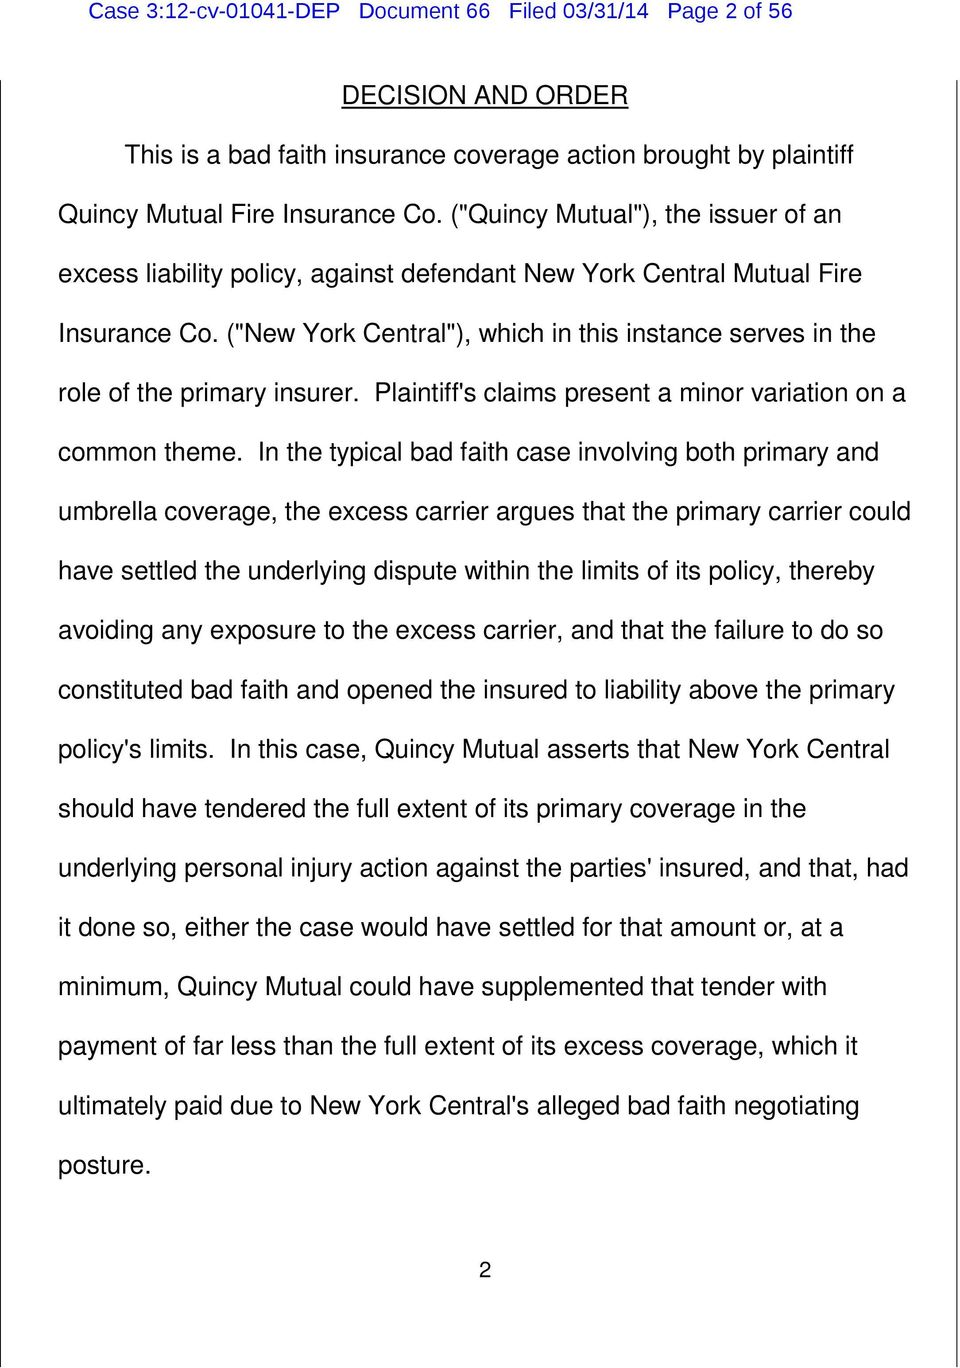 "(""New York Central""), which in this instance serves in the role of the primary insurer. Plaintiff's claims present a minor variation on a common theme."